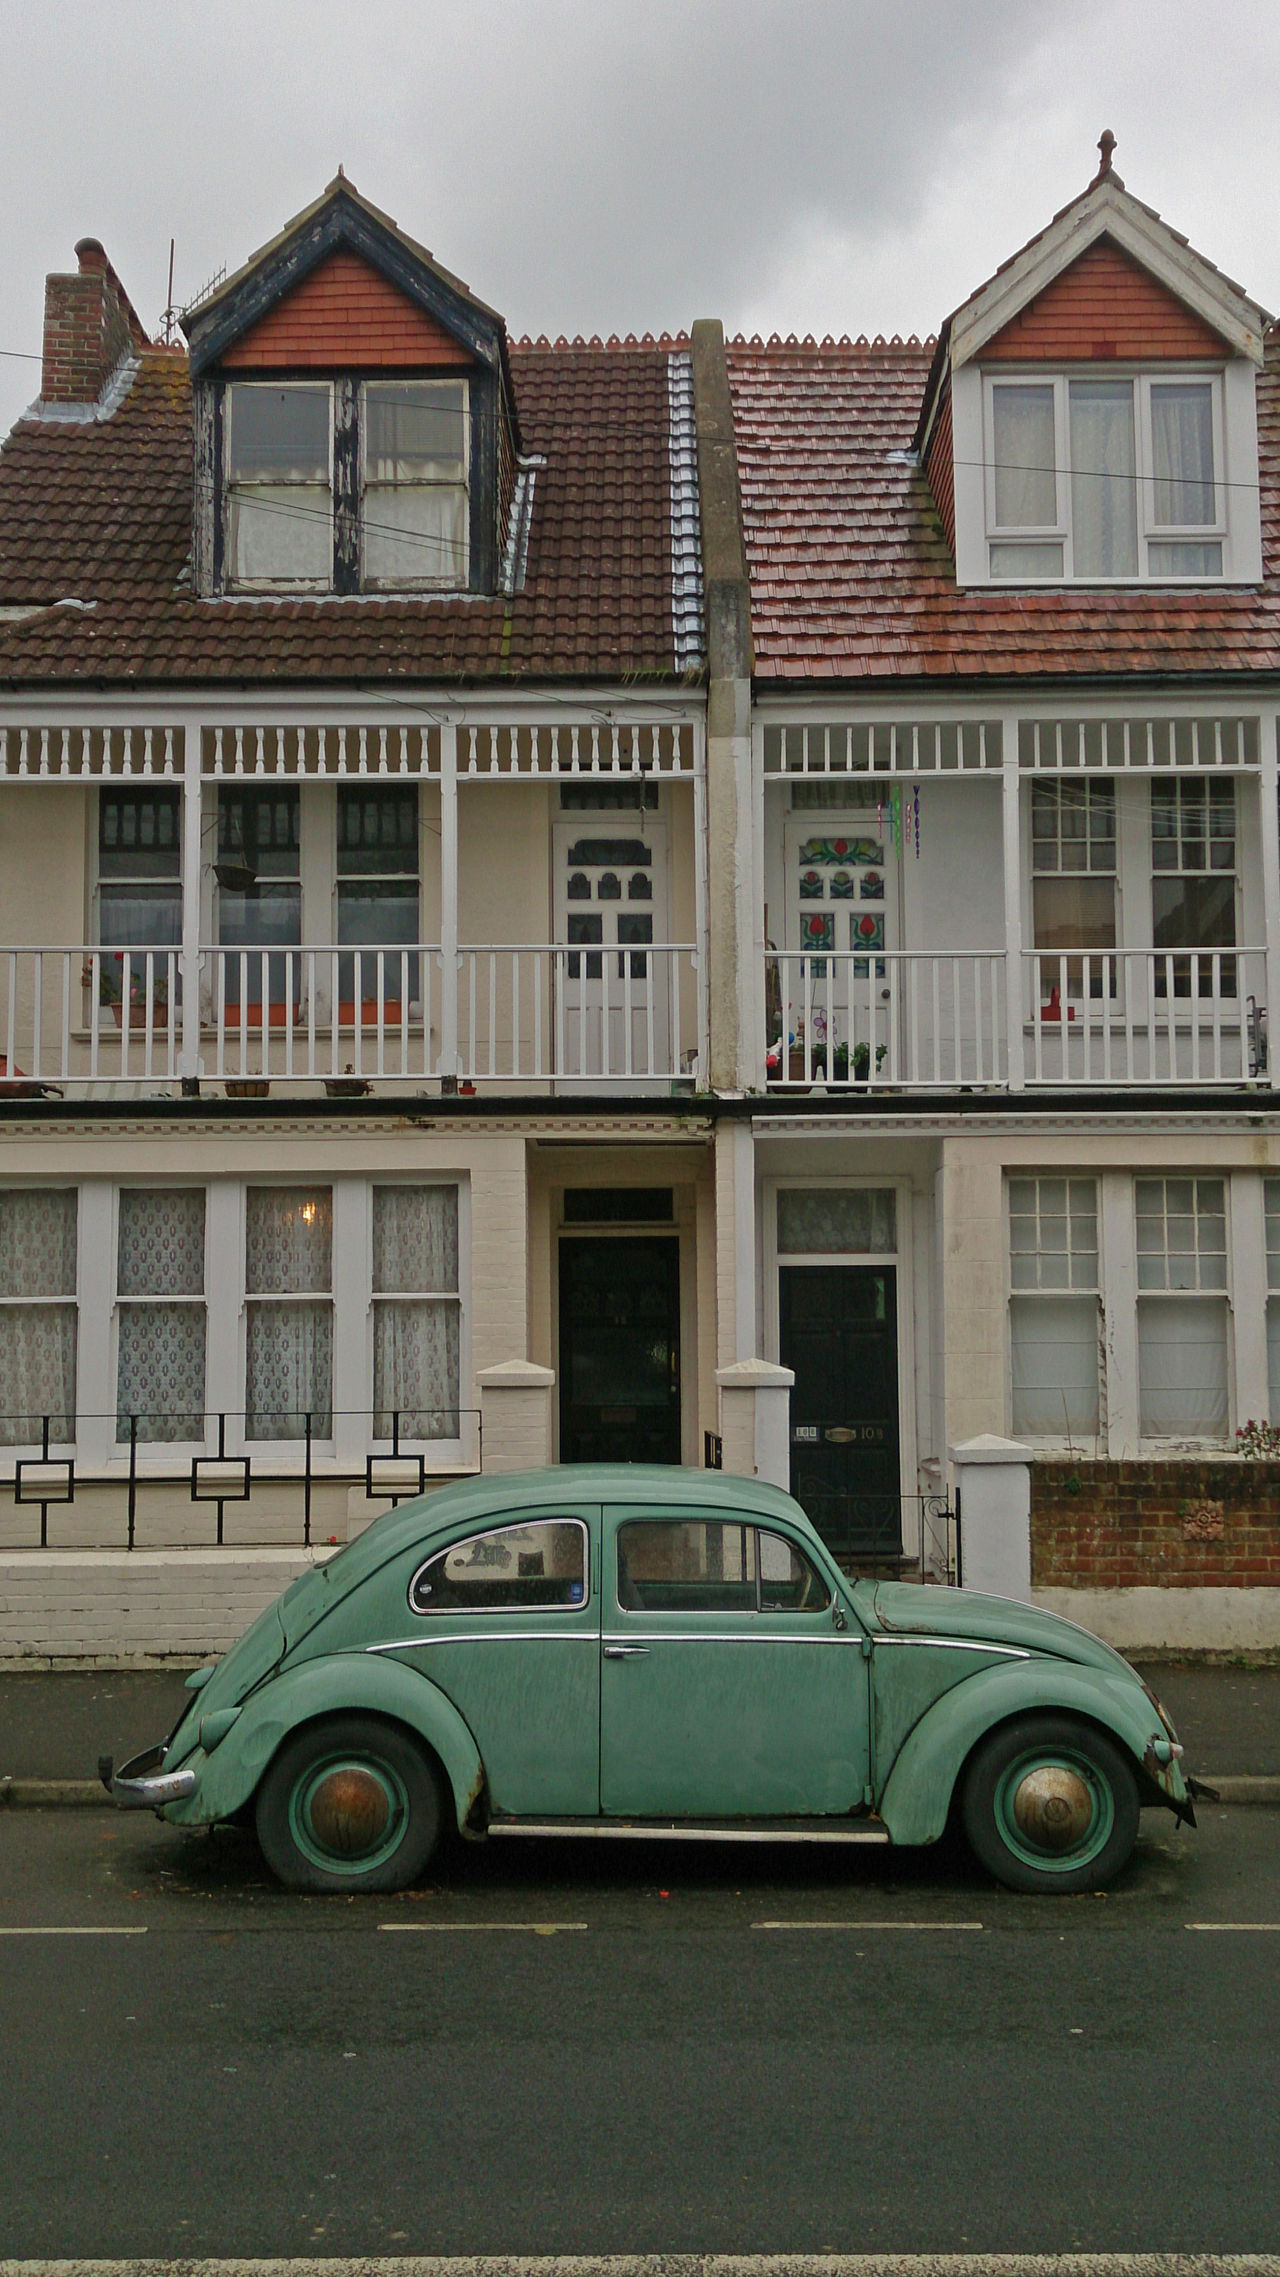 Alter Vw Käfer Day Englische Strasse English Houses English Street No People Old Vw Beetle Outdoors Surreal Turquoise Türkis VW Beetle